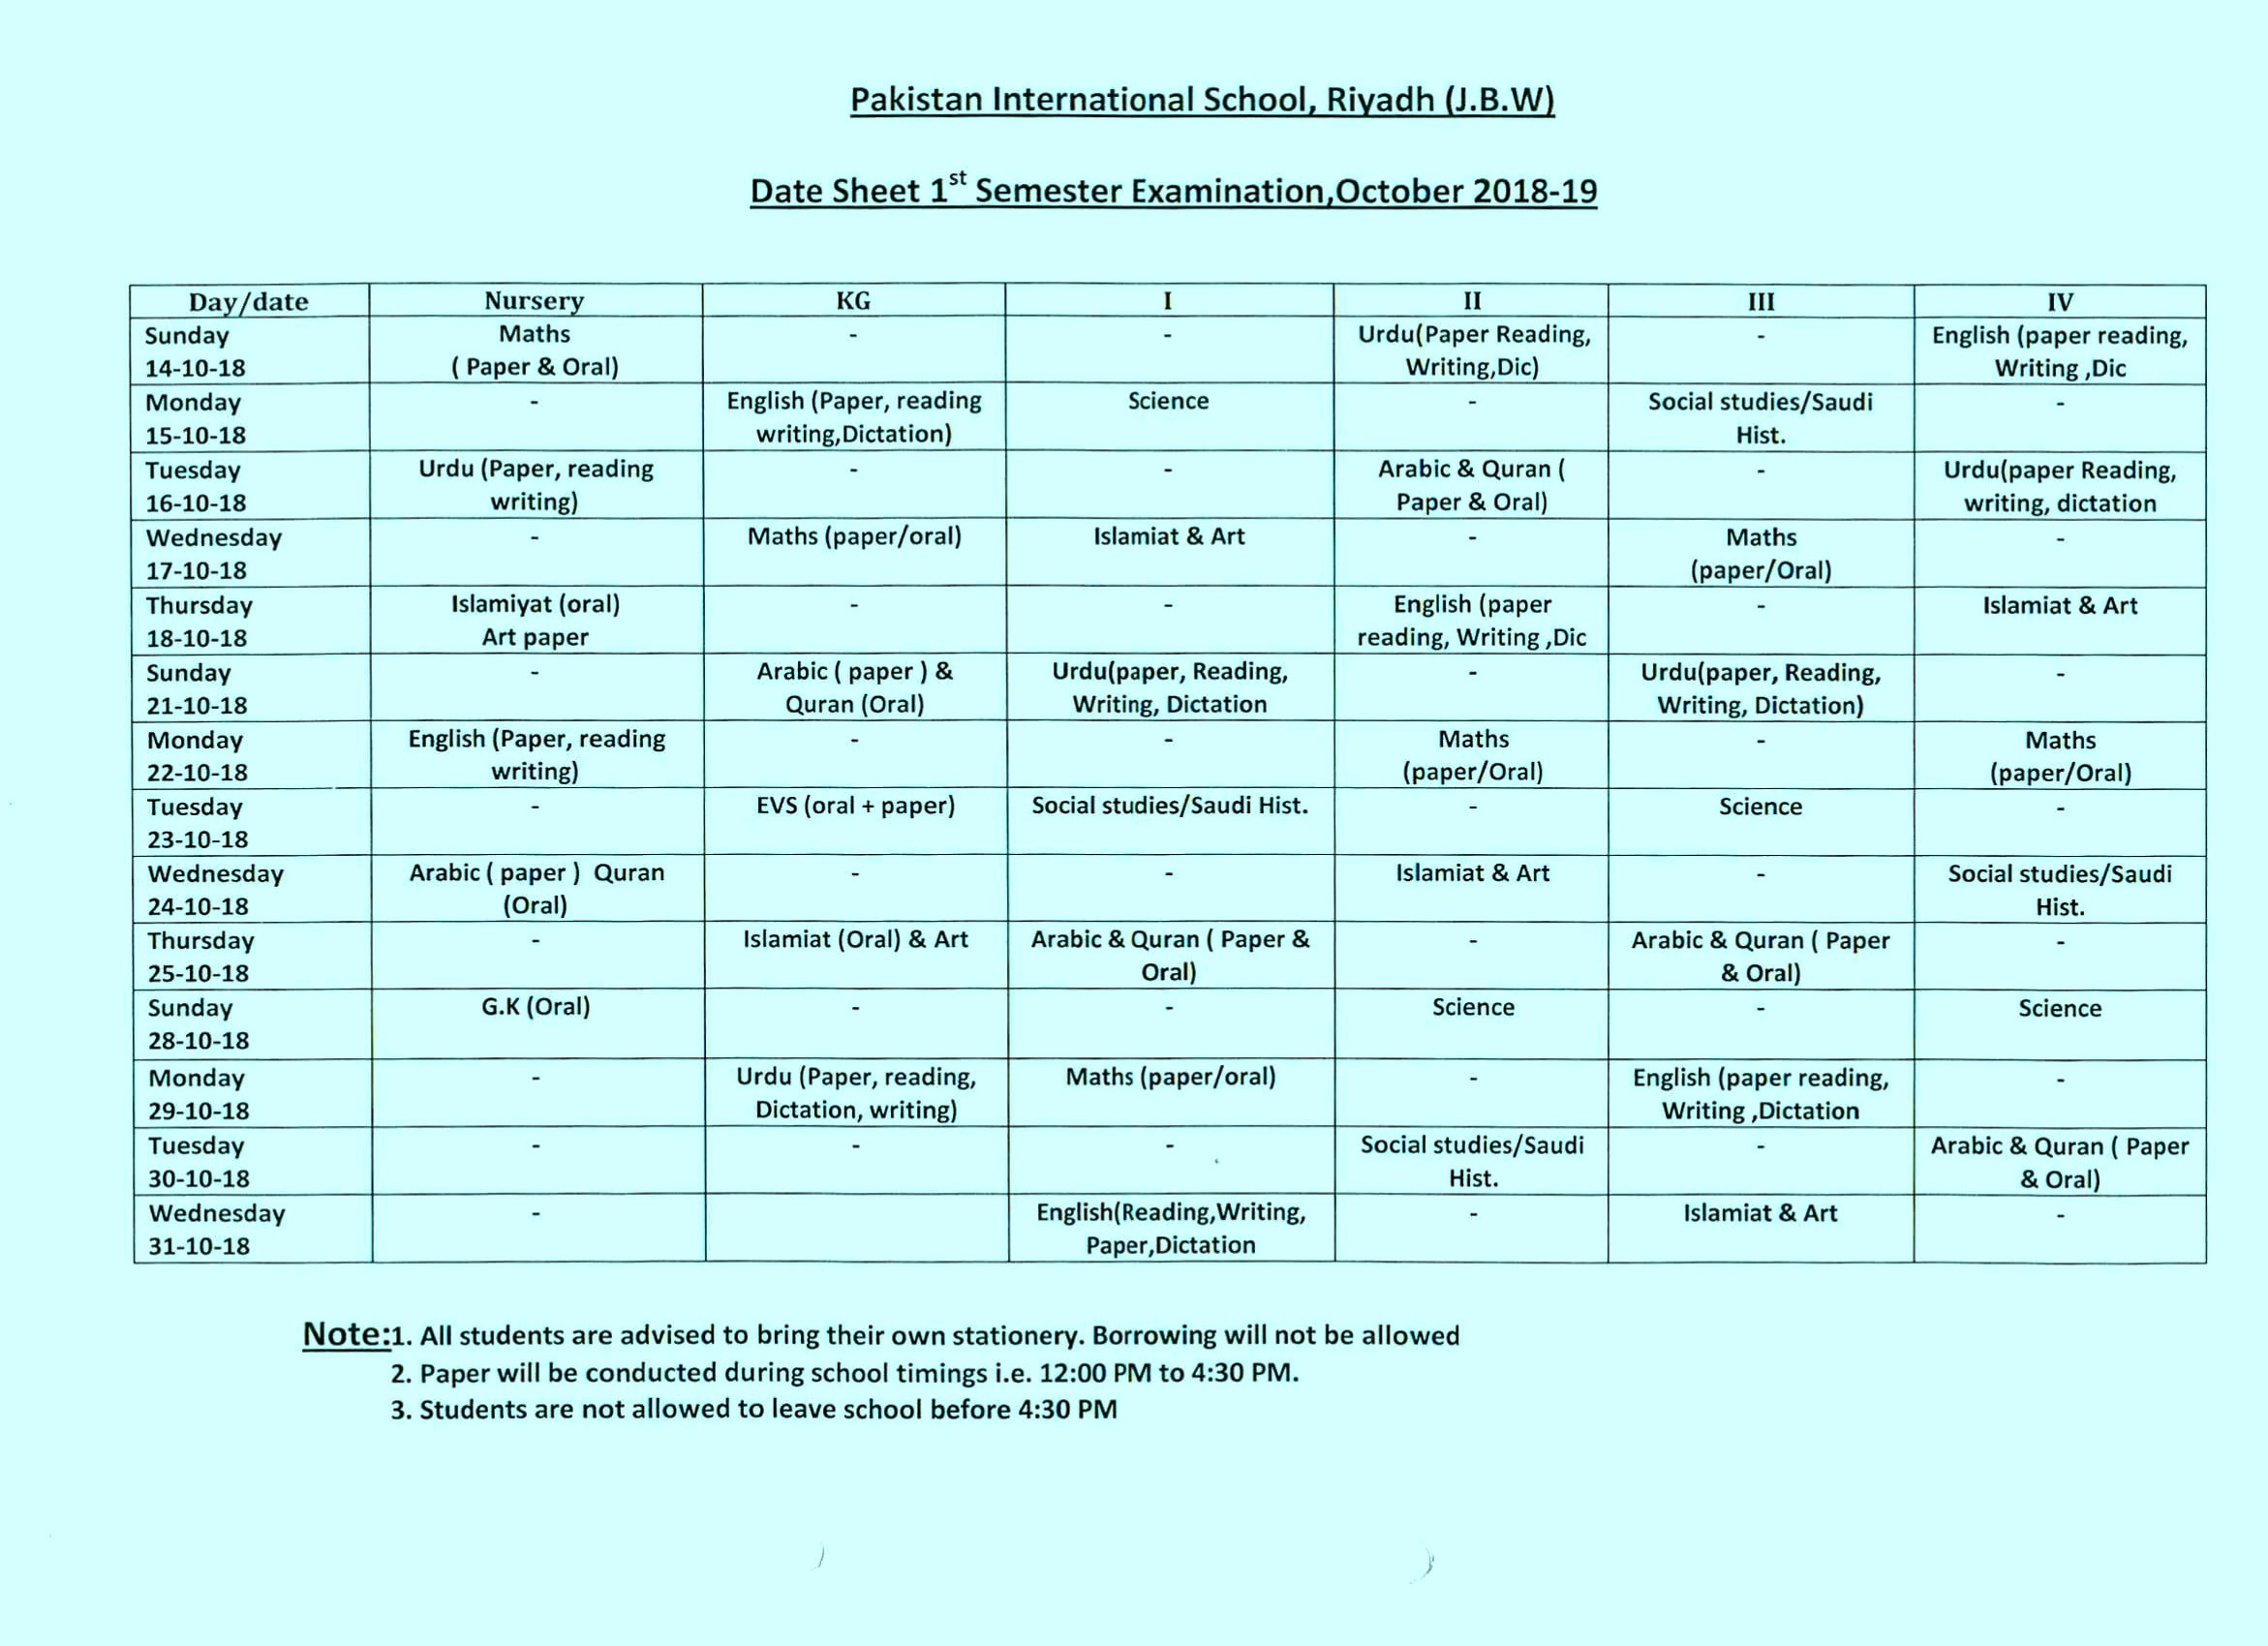 Date Sheet For First Term Examinations October